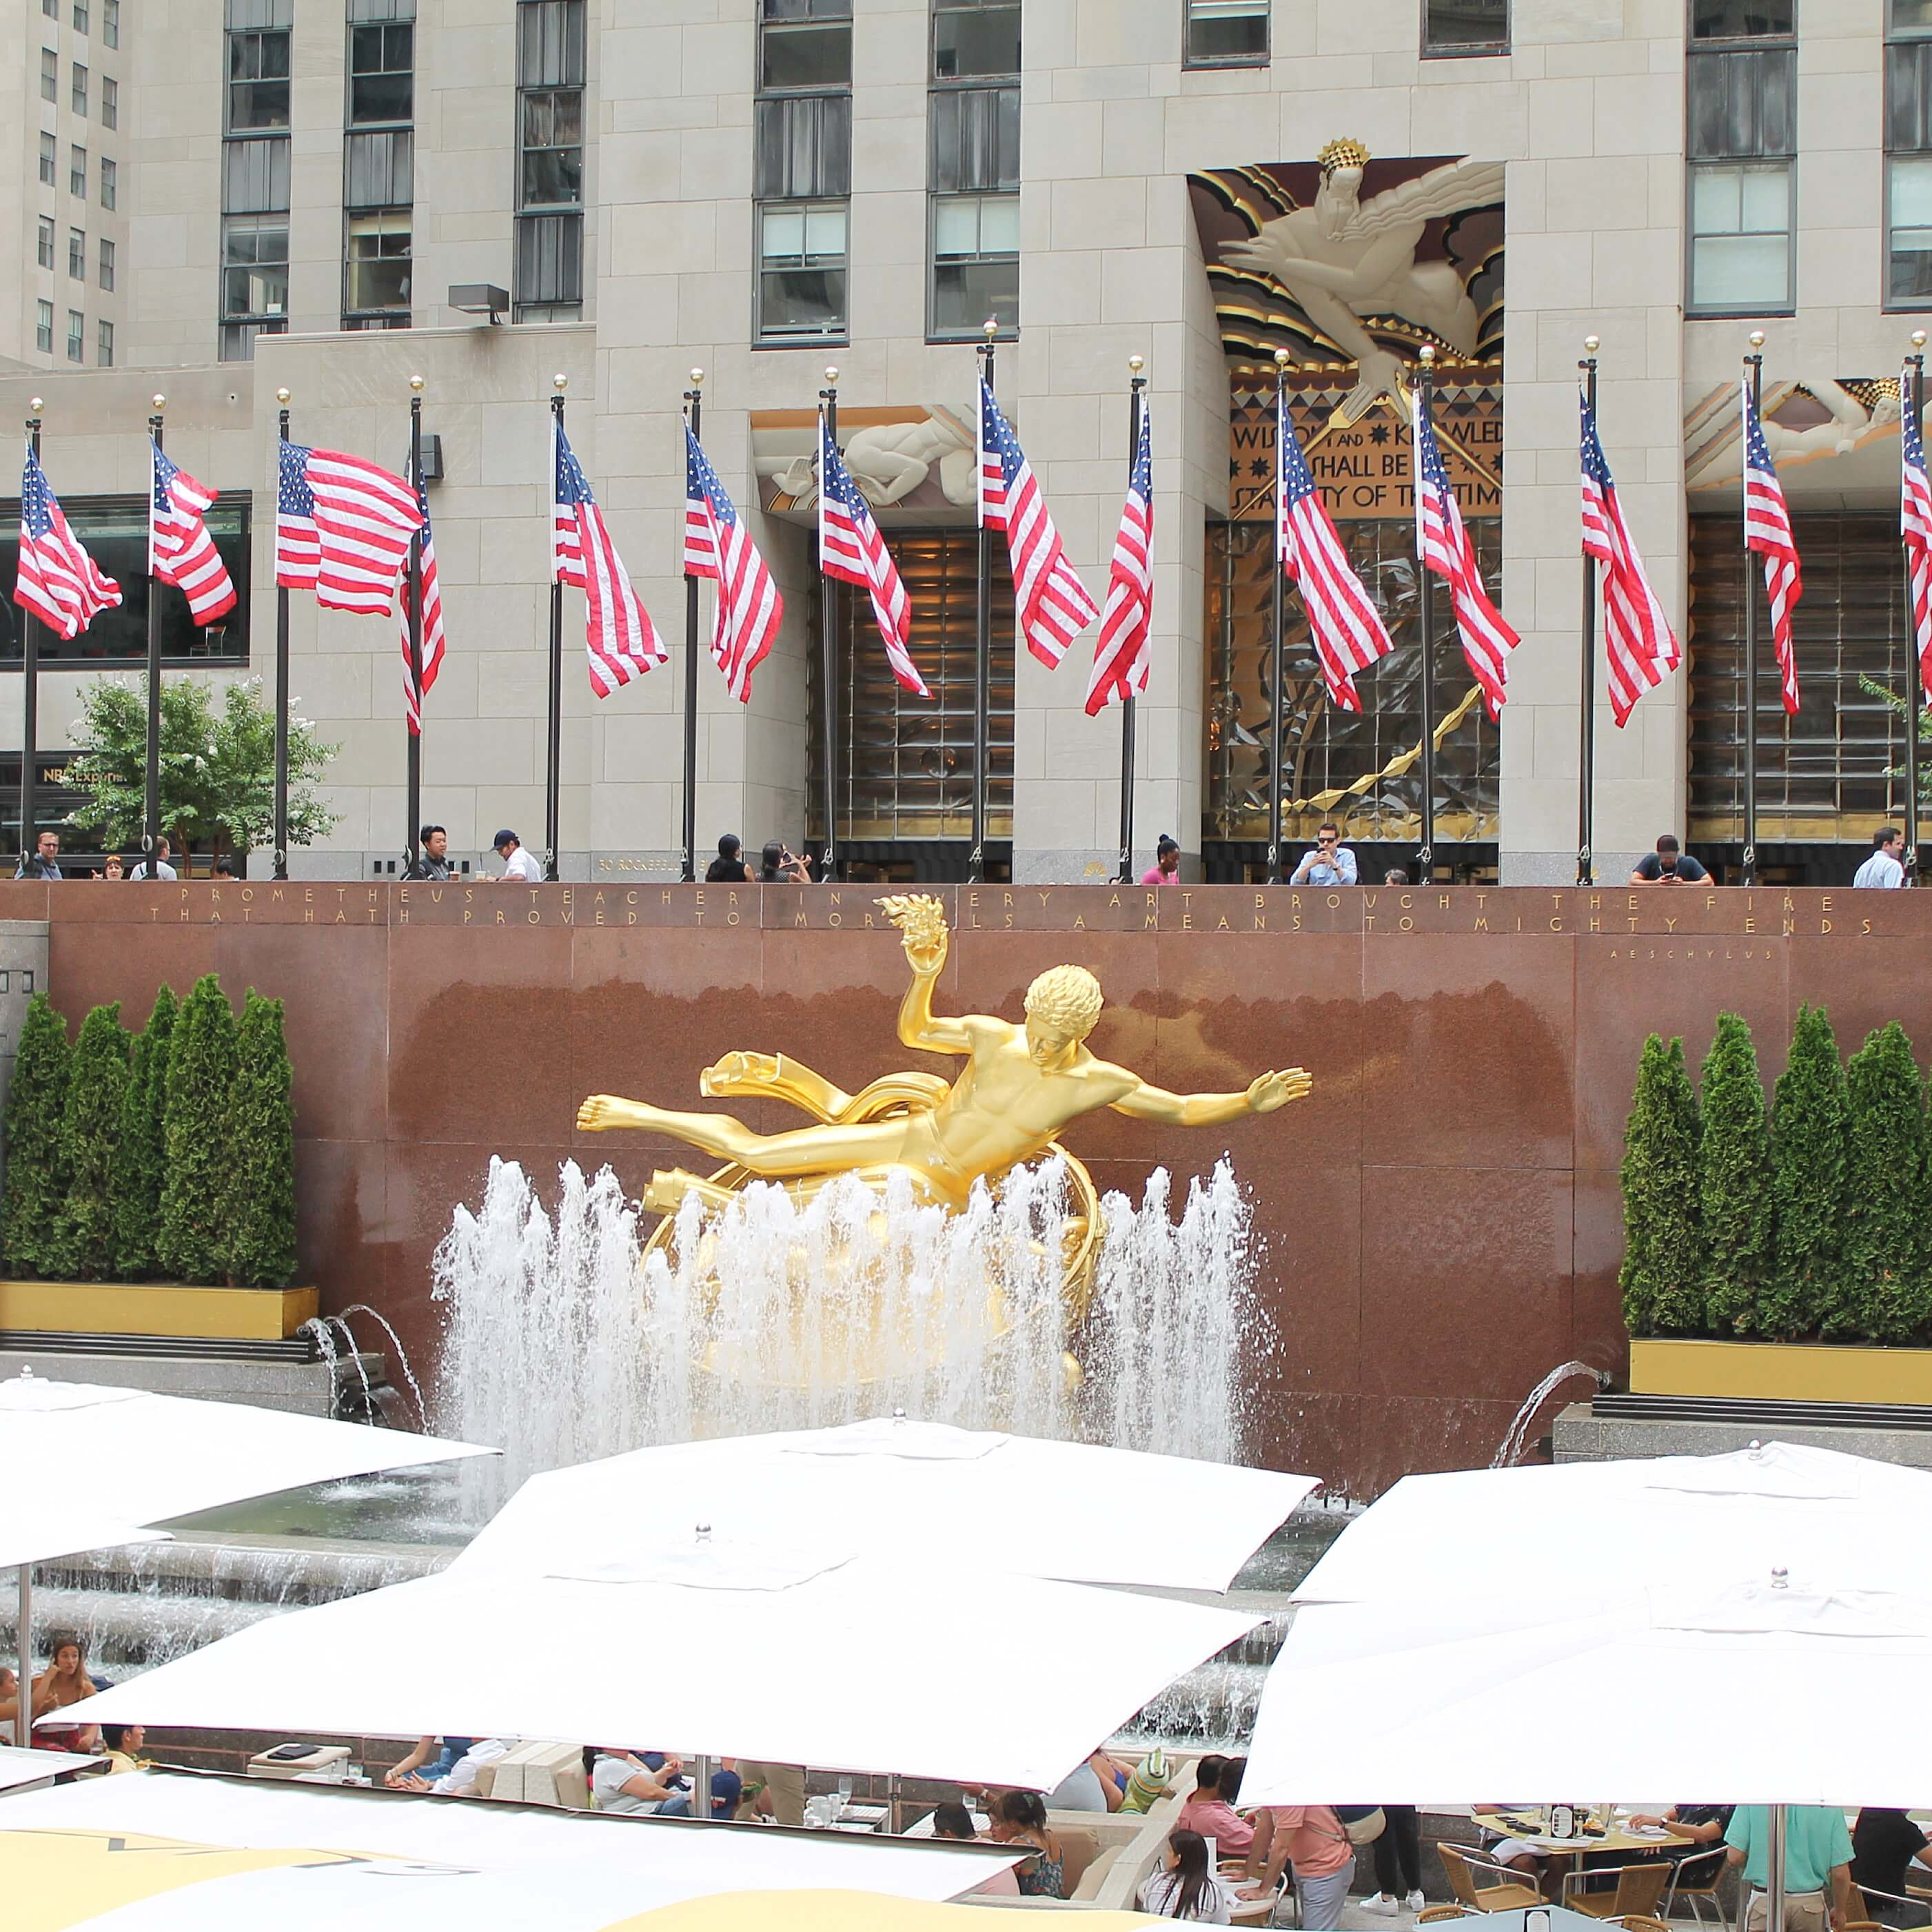 Kid-friendly activities in New York City | Kid-Friendly Activities in NYC. Fun things to do in NYC with your family. Site seeing Rockefeller Center.